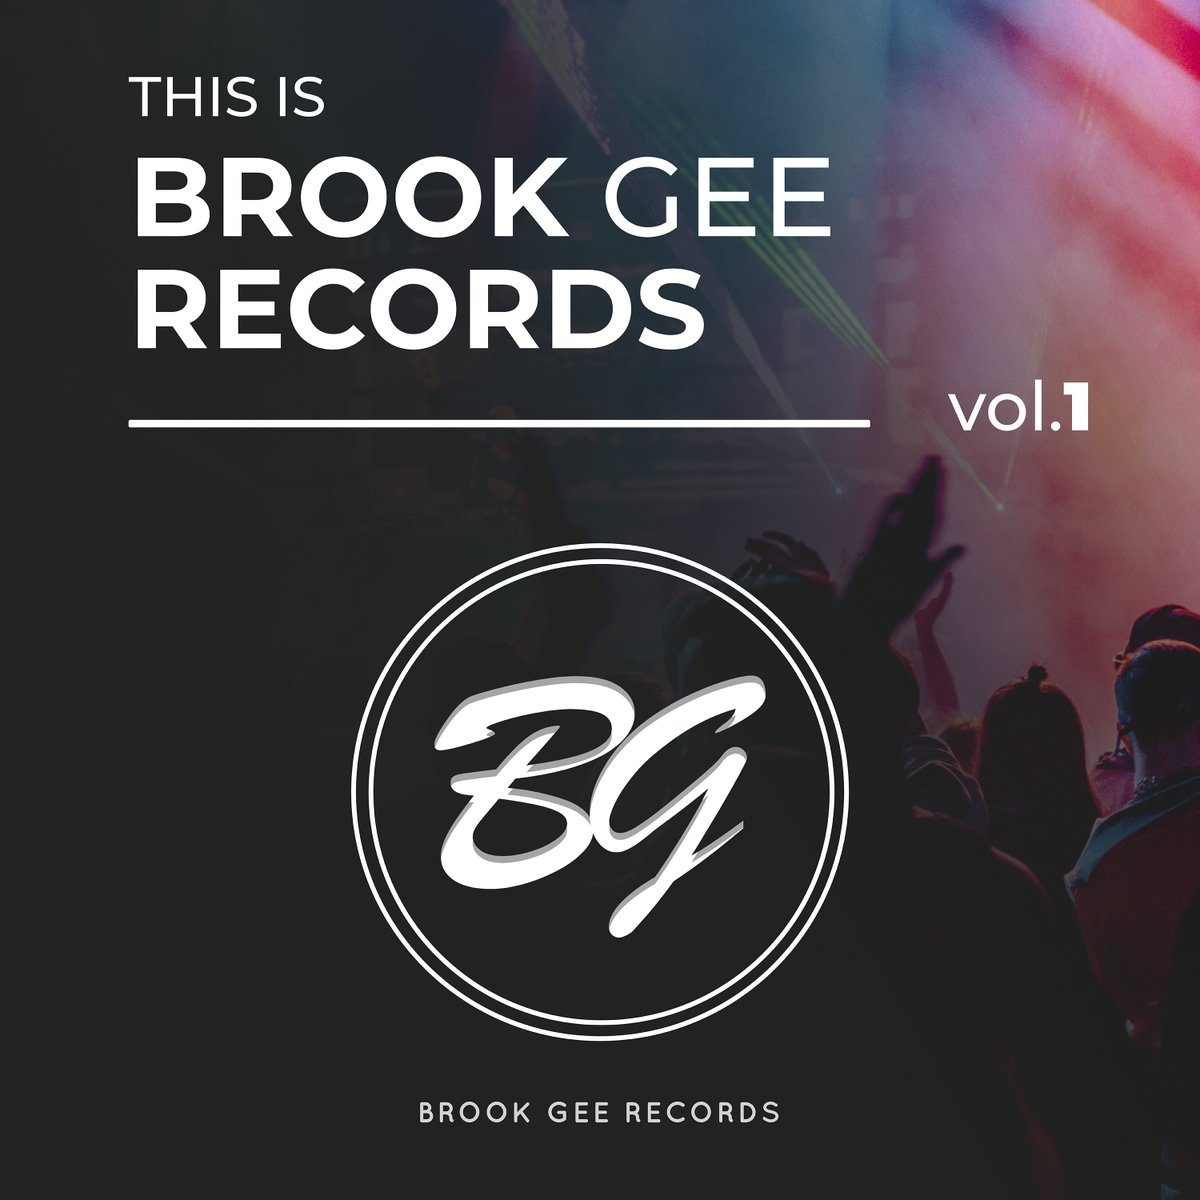 Brook Gee Records on Twitter: